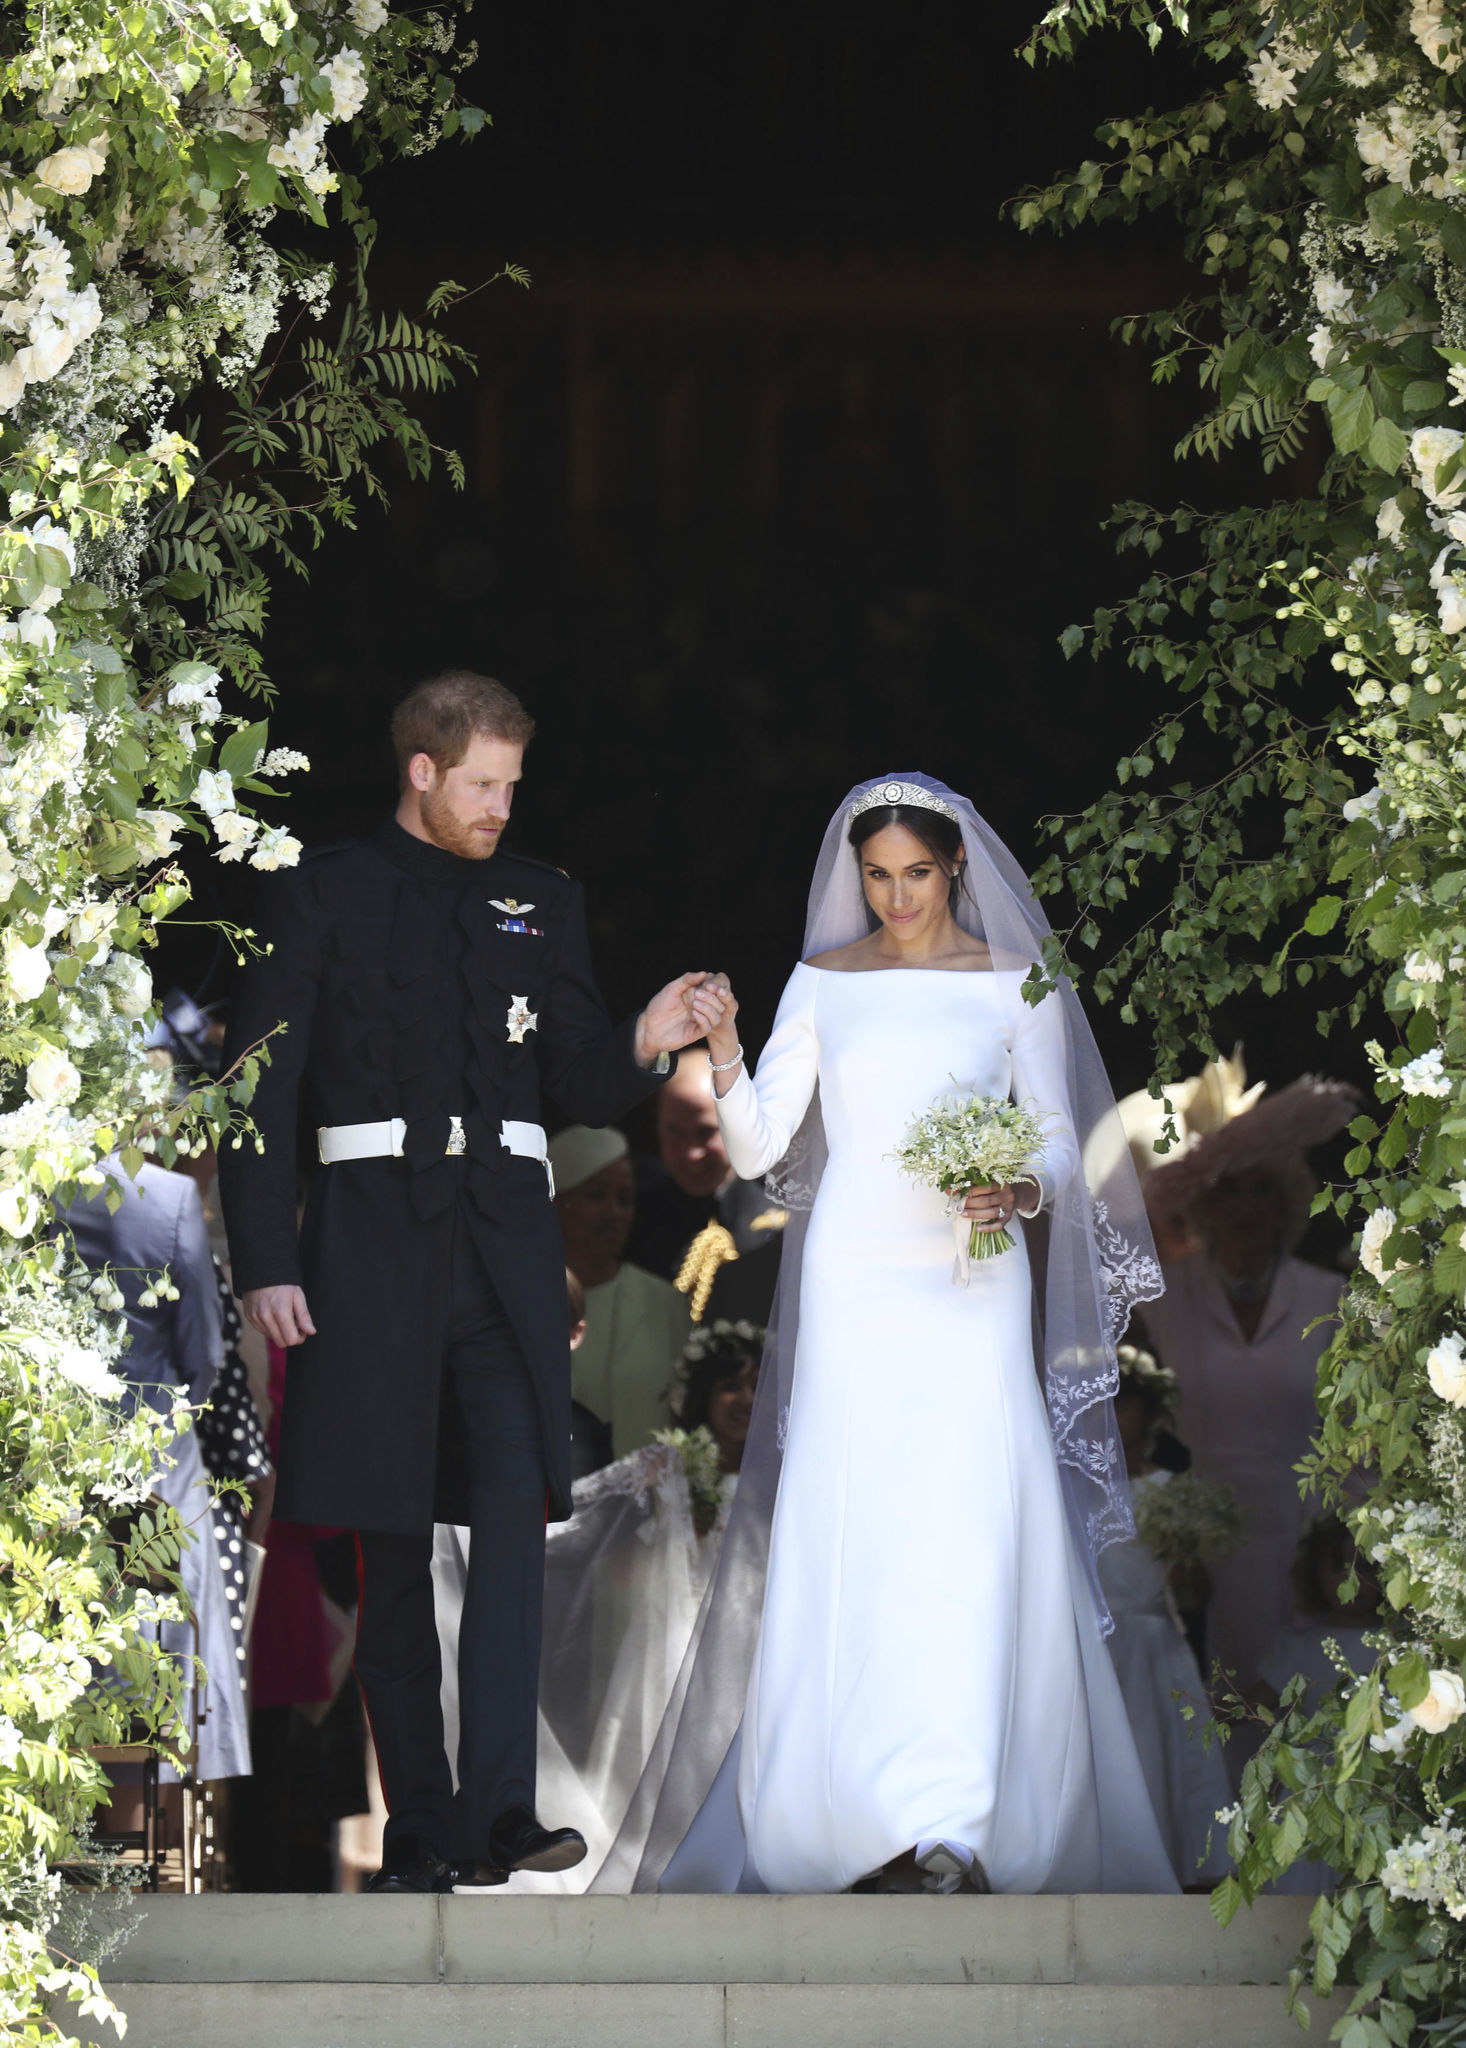 Prince Harry, left, and wife Meghan Markle — the Duke and Duchess of Sussex — on the steps of St George's Chapel at Windsor Castle following their wedding in Windsor.